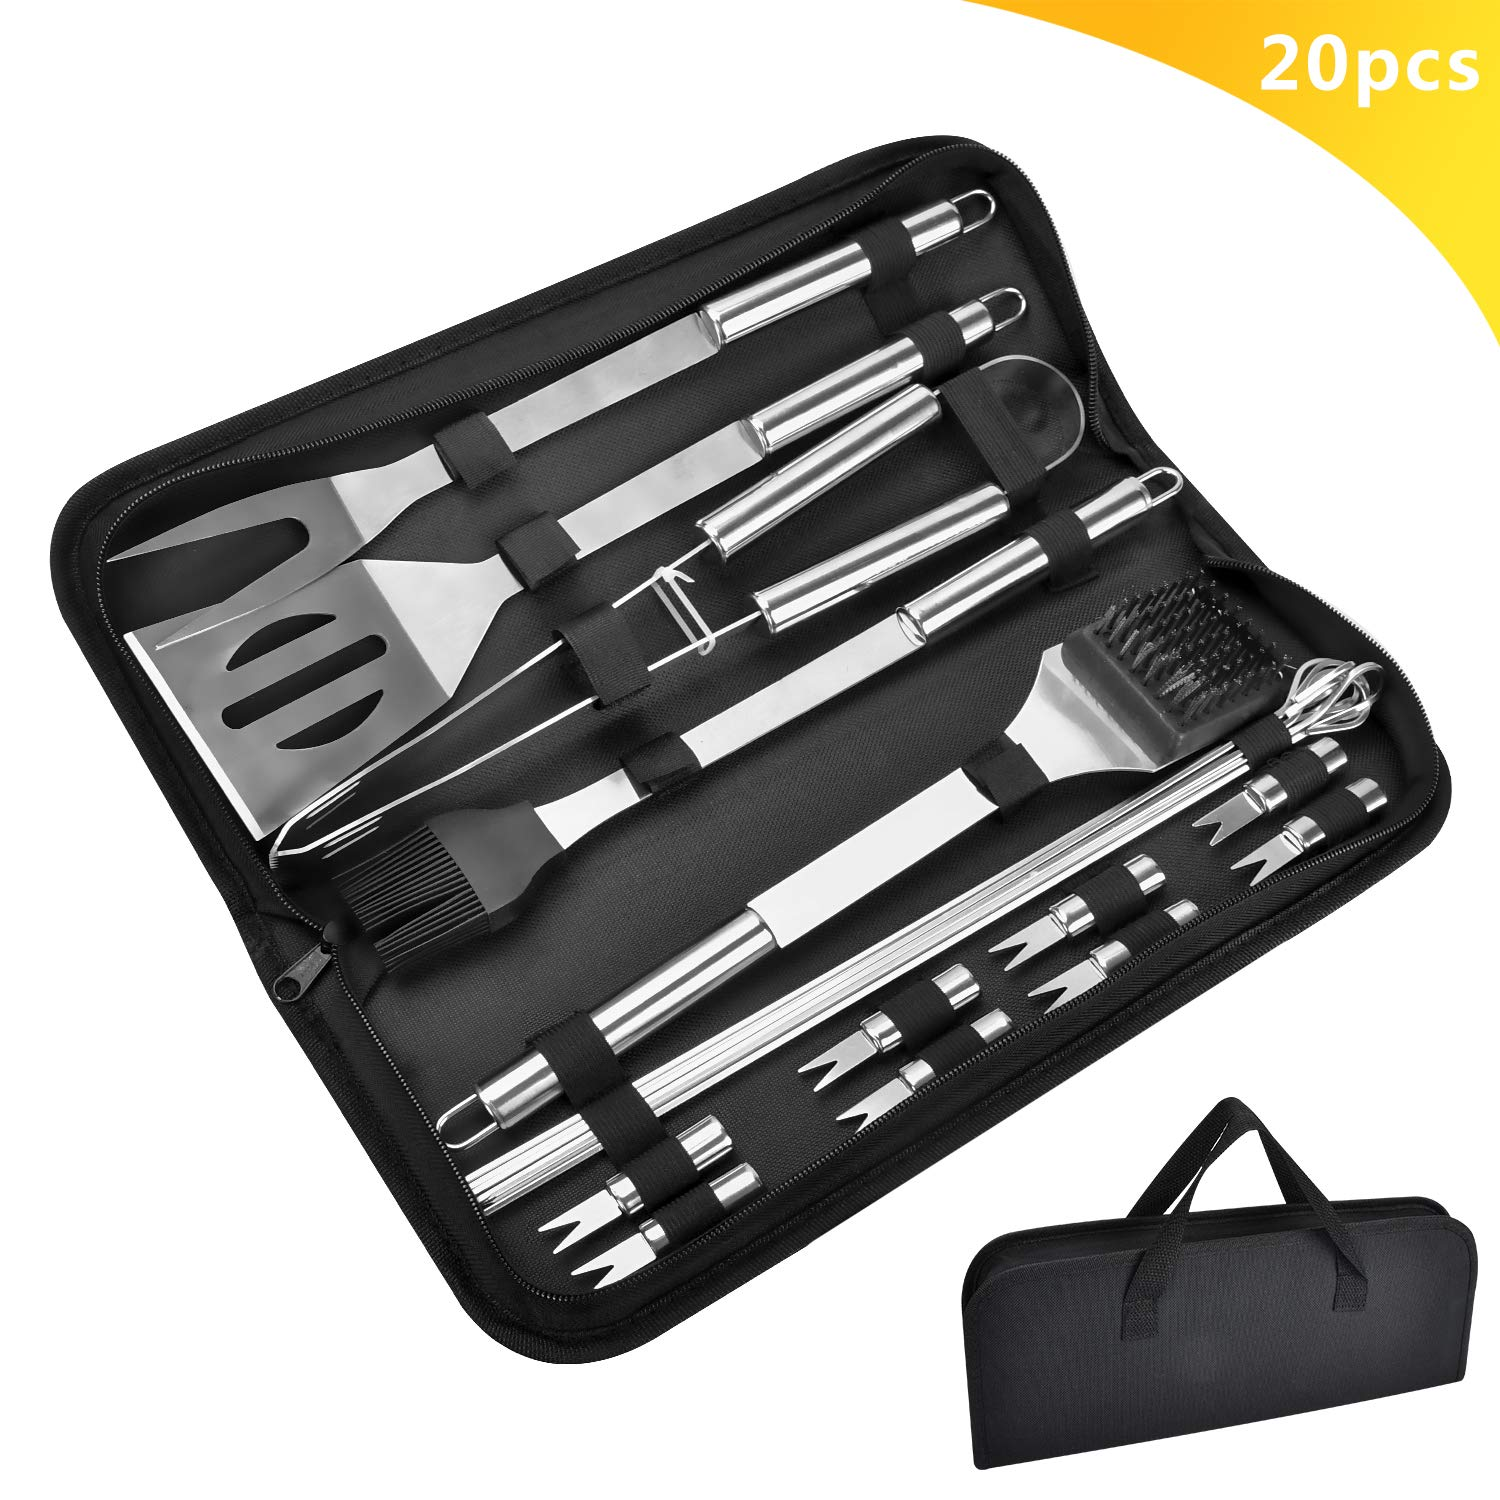 BBQ Tool Set 20 Pcs Stainless Steel Accessories Grill Grilling Barbecue Utensils Gift for Men Dad on Father s Day with Skewer, Spatula, Tong, Fork, Holder and Brush for Outdoor Camping